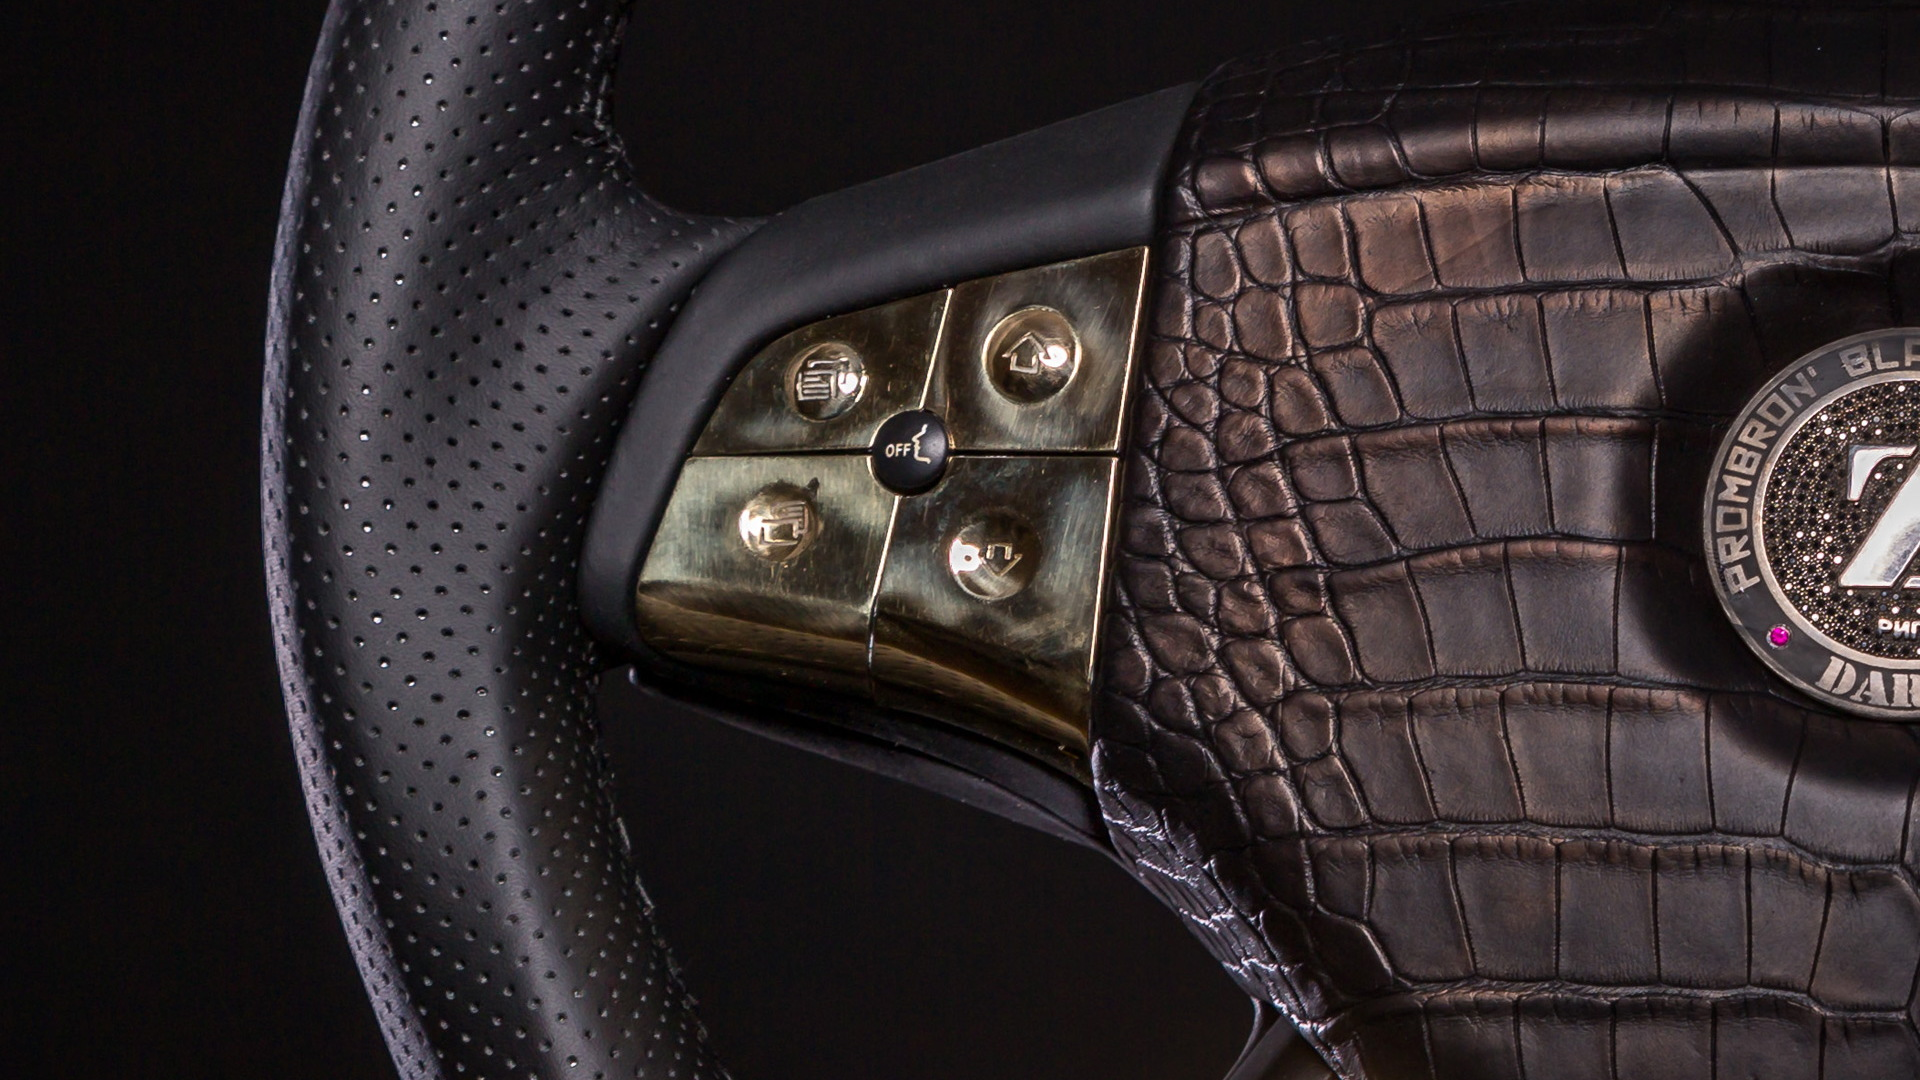 World's most expensive steering wheel from Dartz Prombron Black Alligator